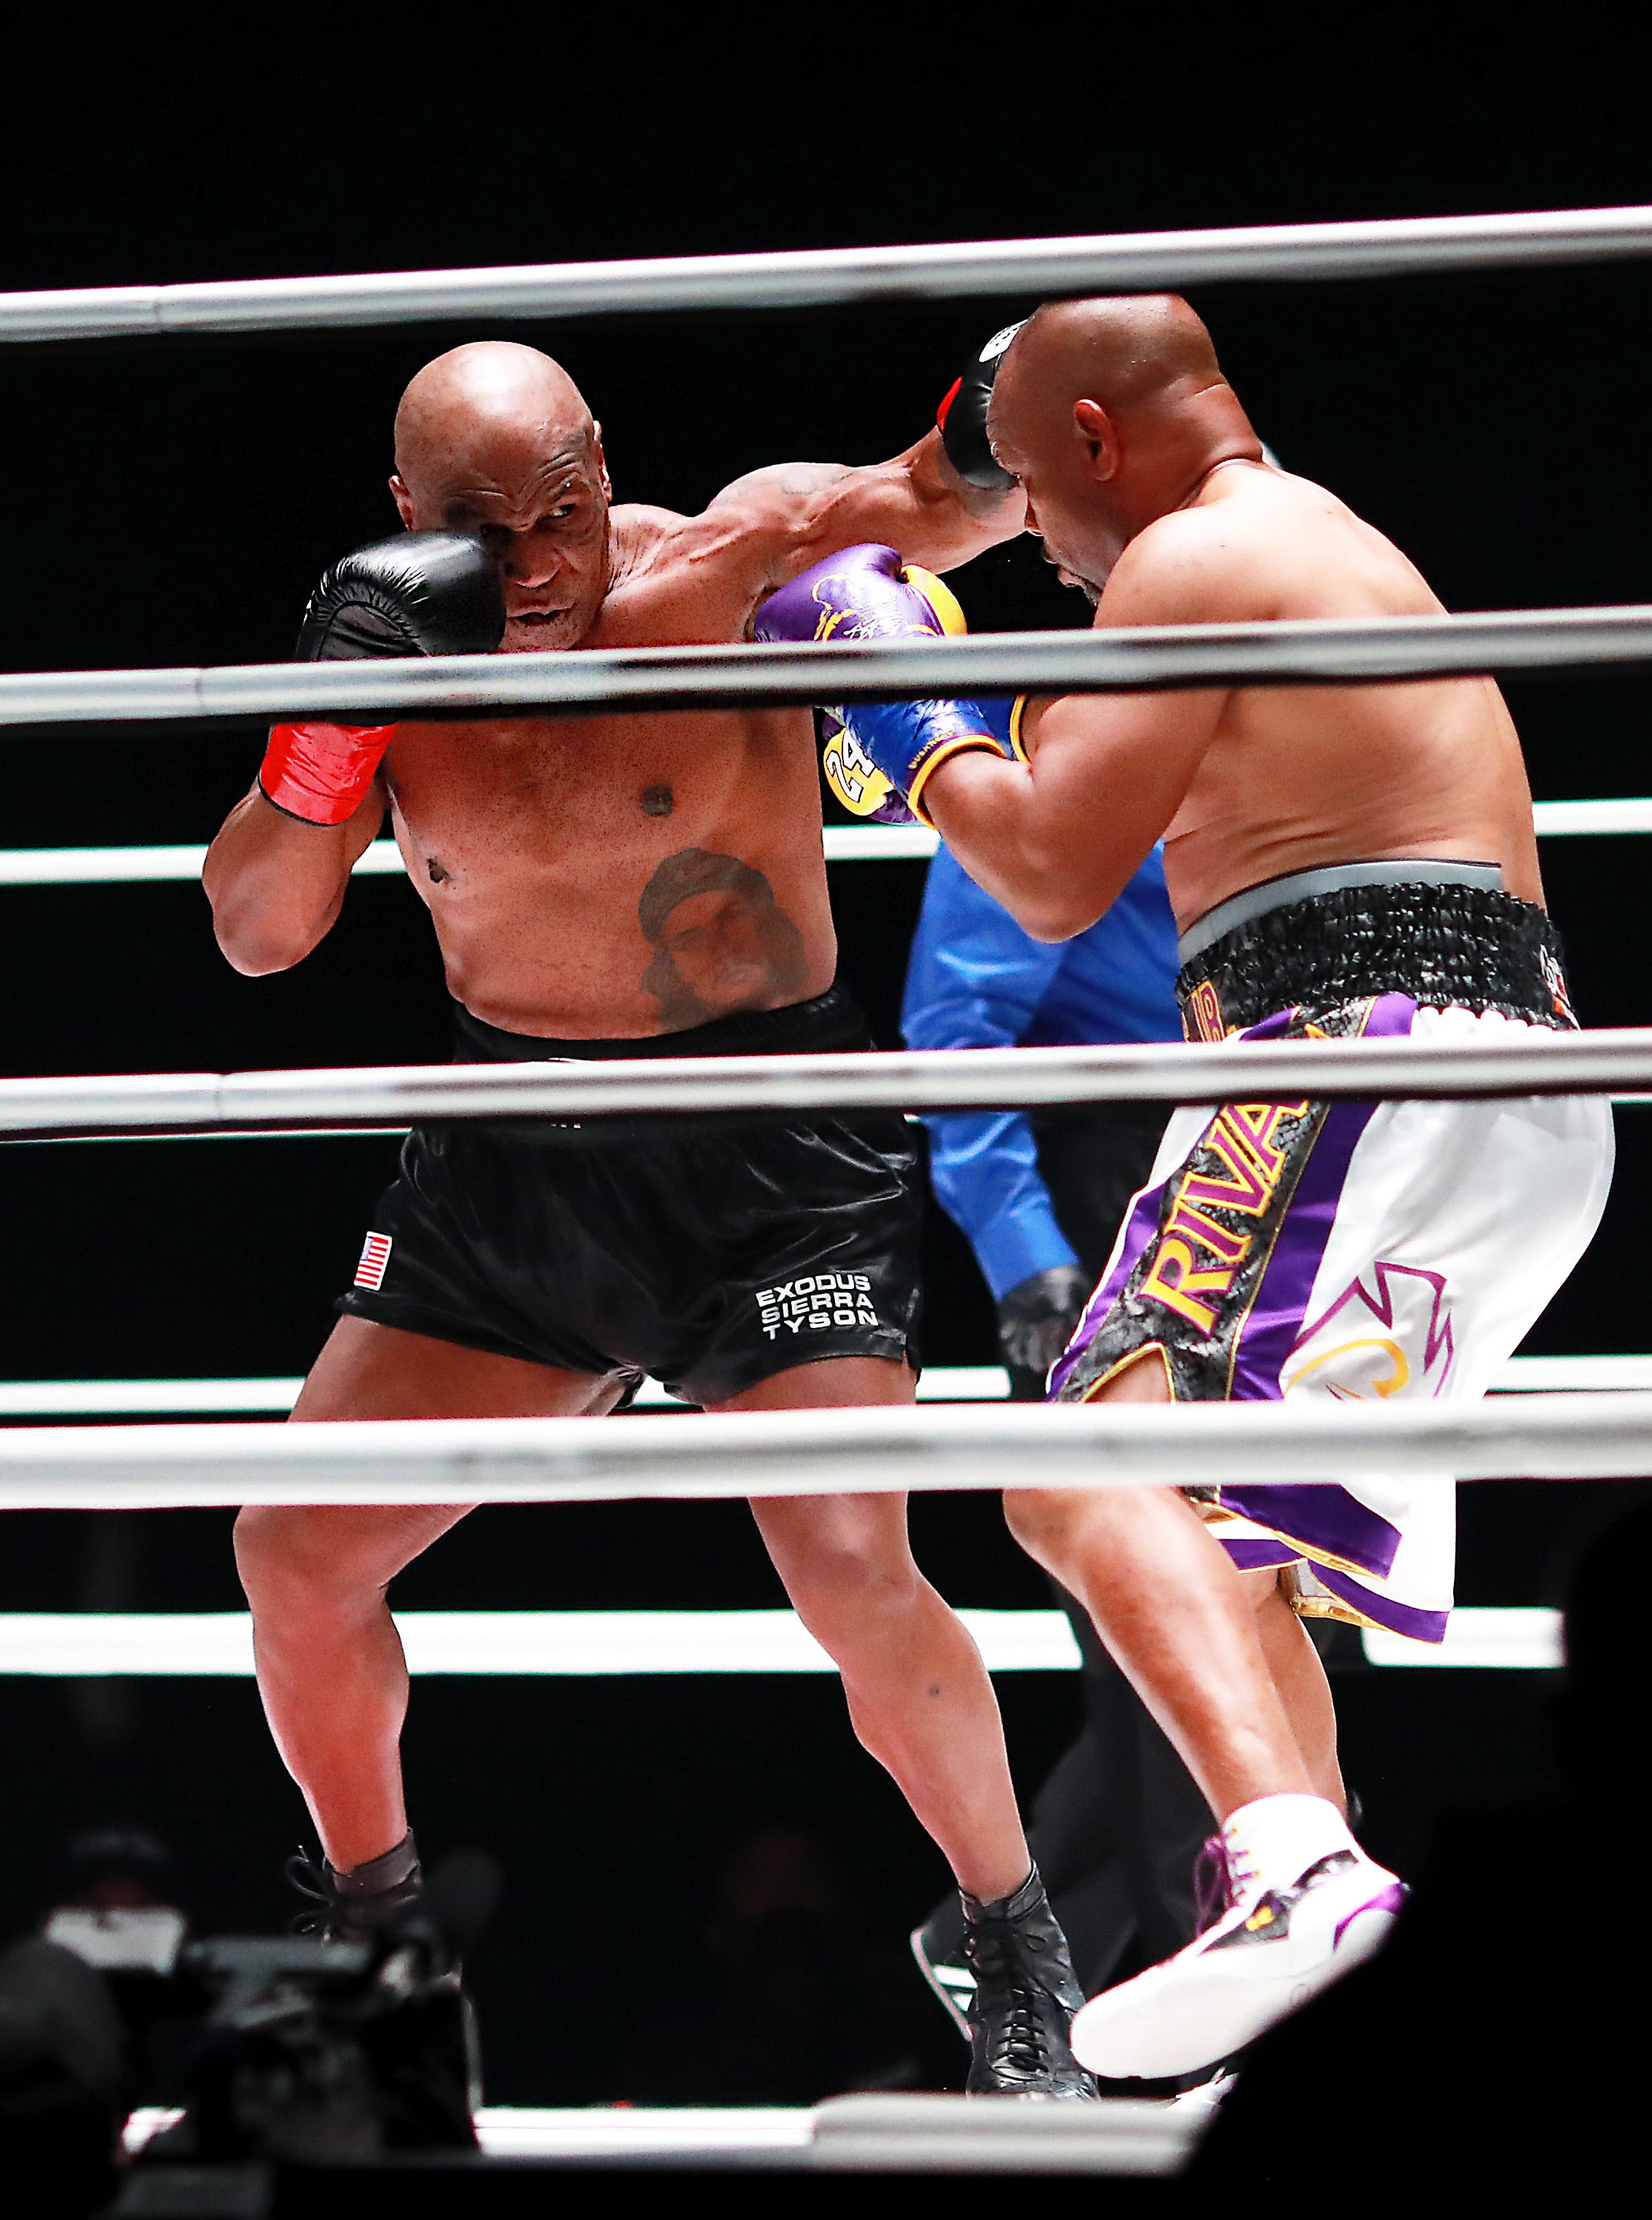 Mike Tyson, 54, fights Roy Jones Jr., 51, to draw in his return to boxing ring